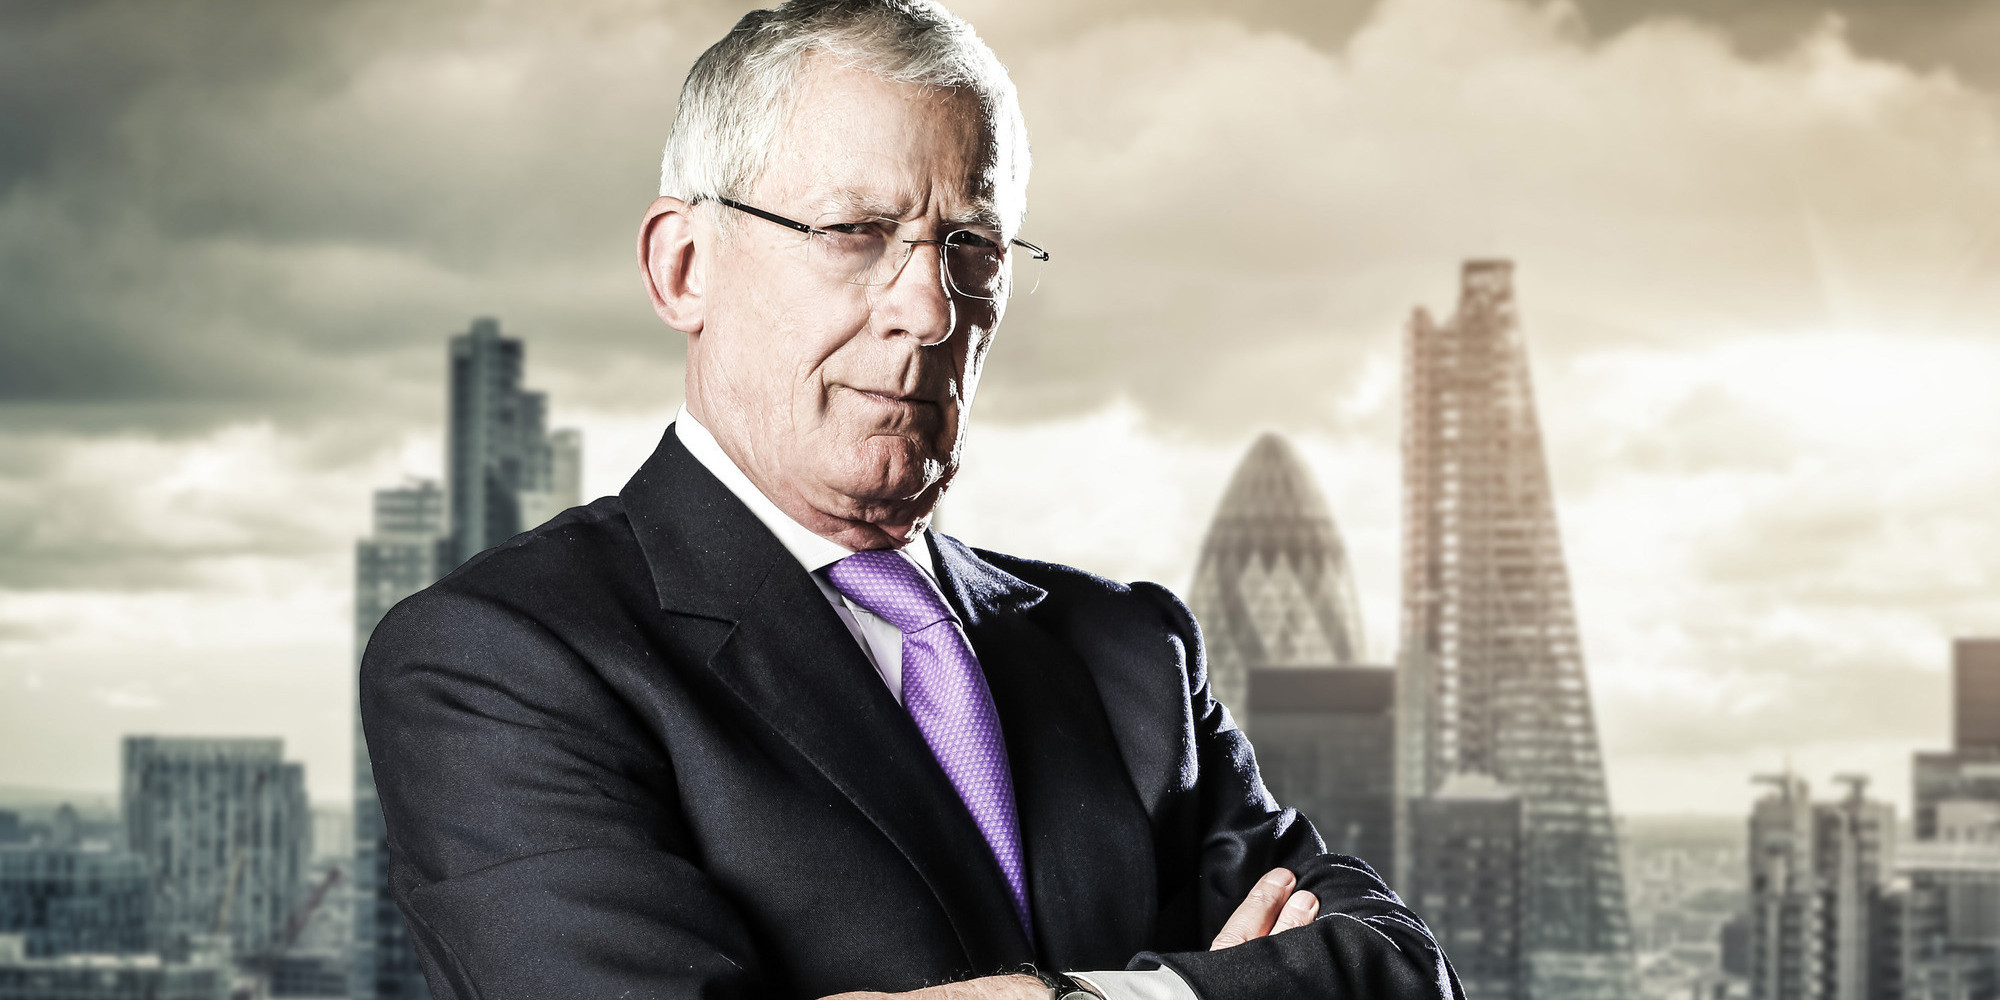 Nick Hewer NickHewer) Twitter